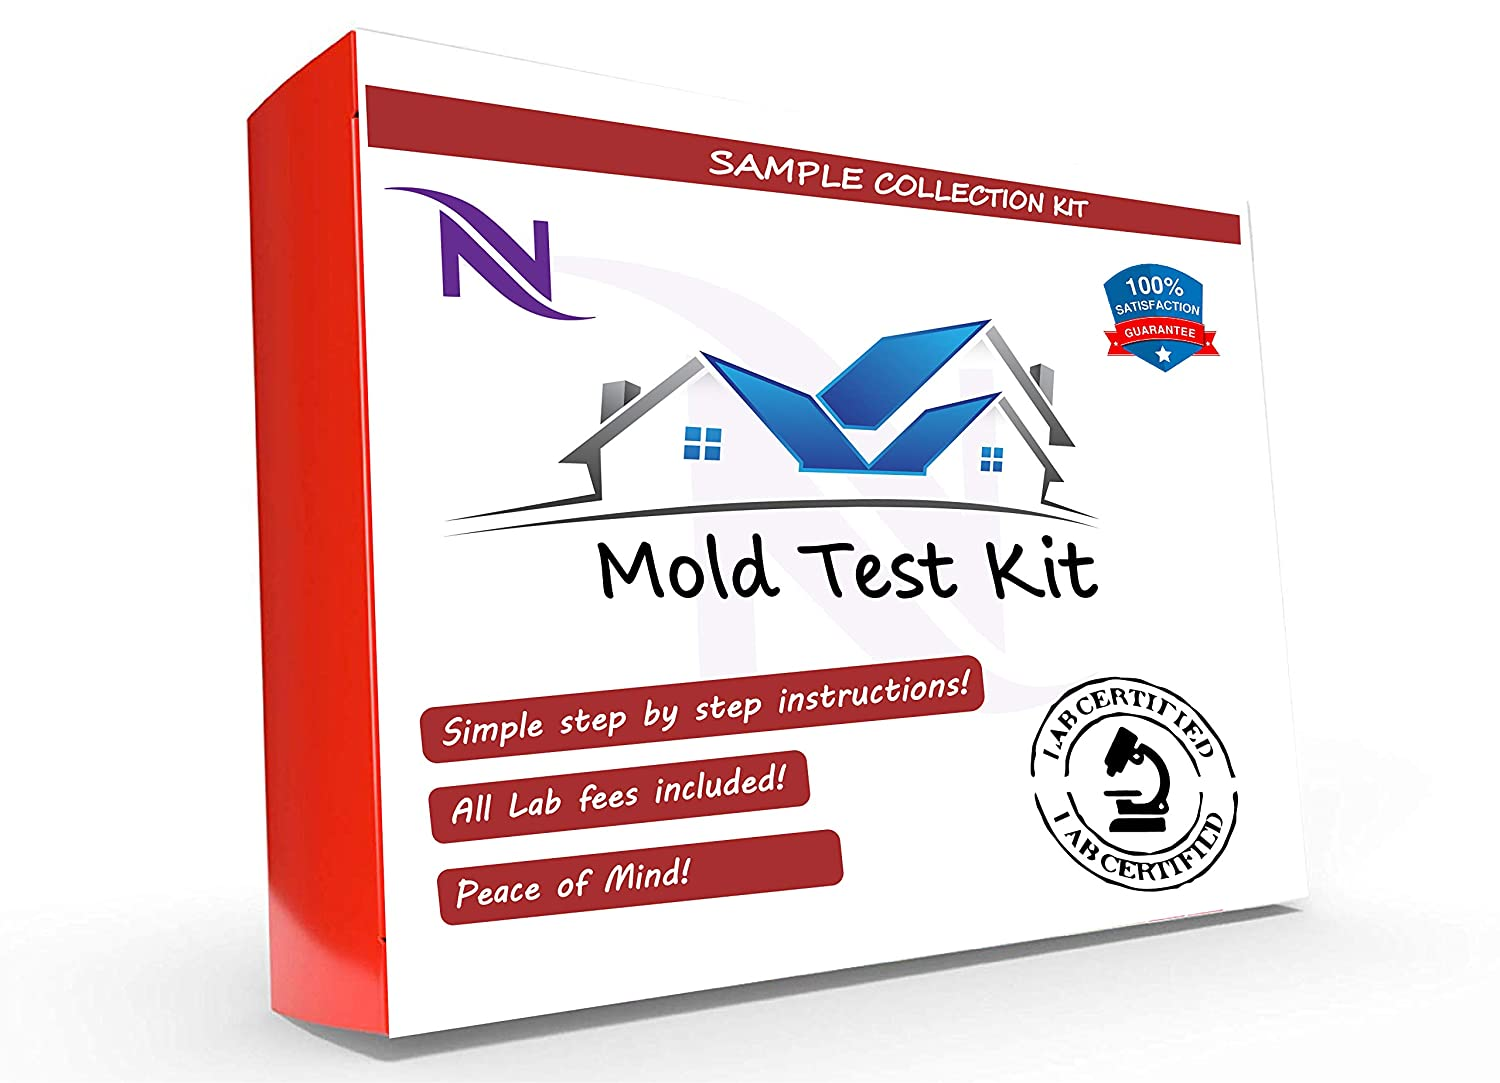 DIY Mold Test, Mold Testing Kit (1 Tests). Lab Analysis and Expert Consultation Included